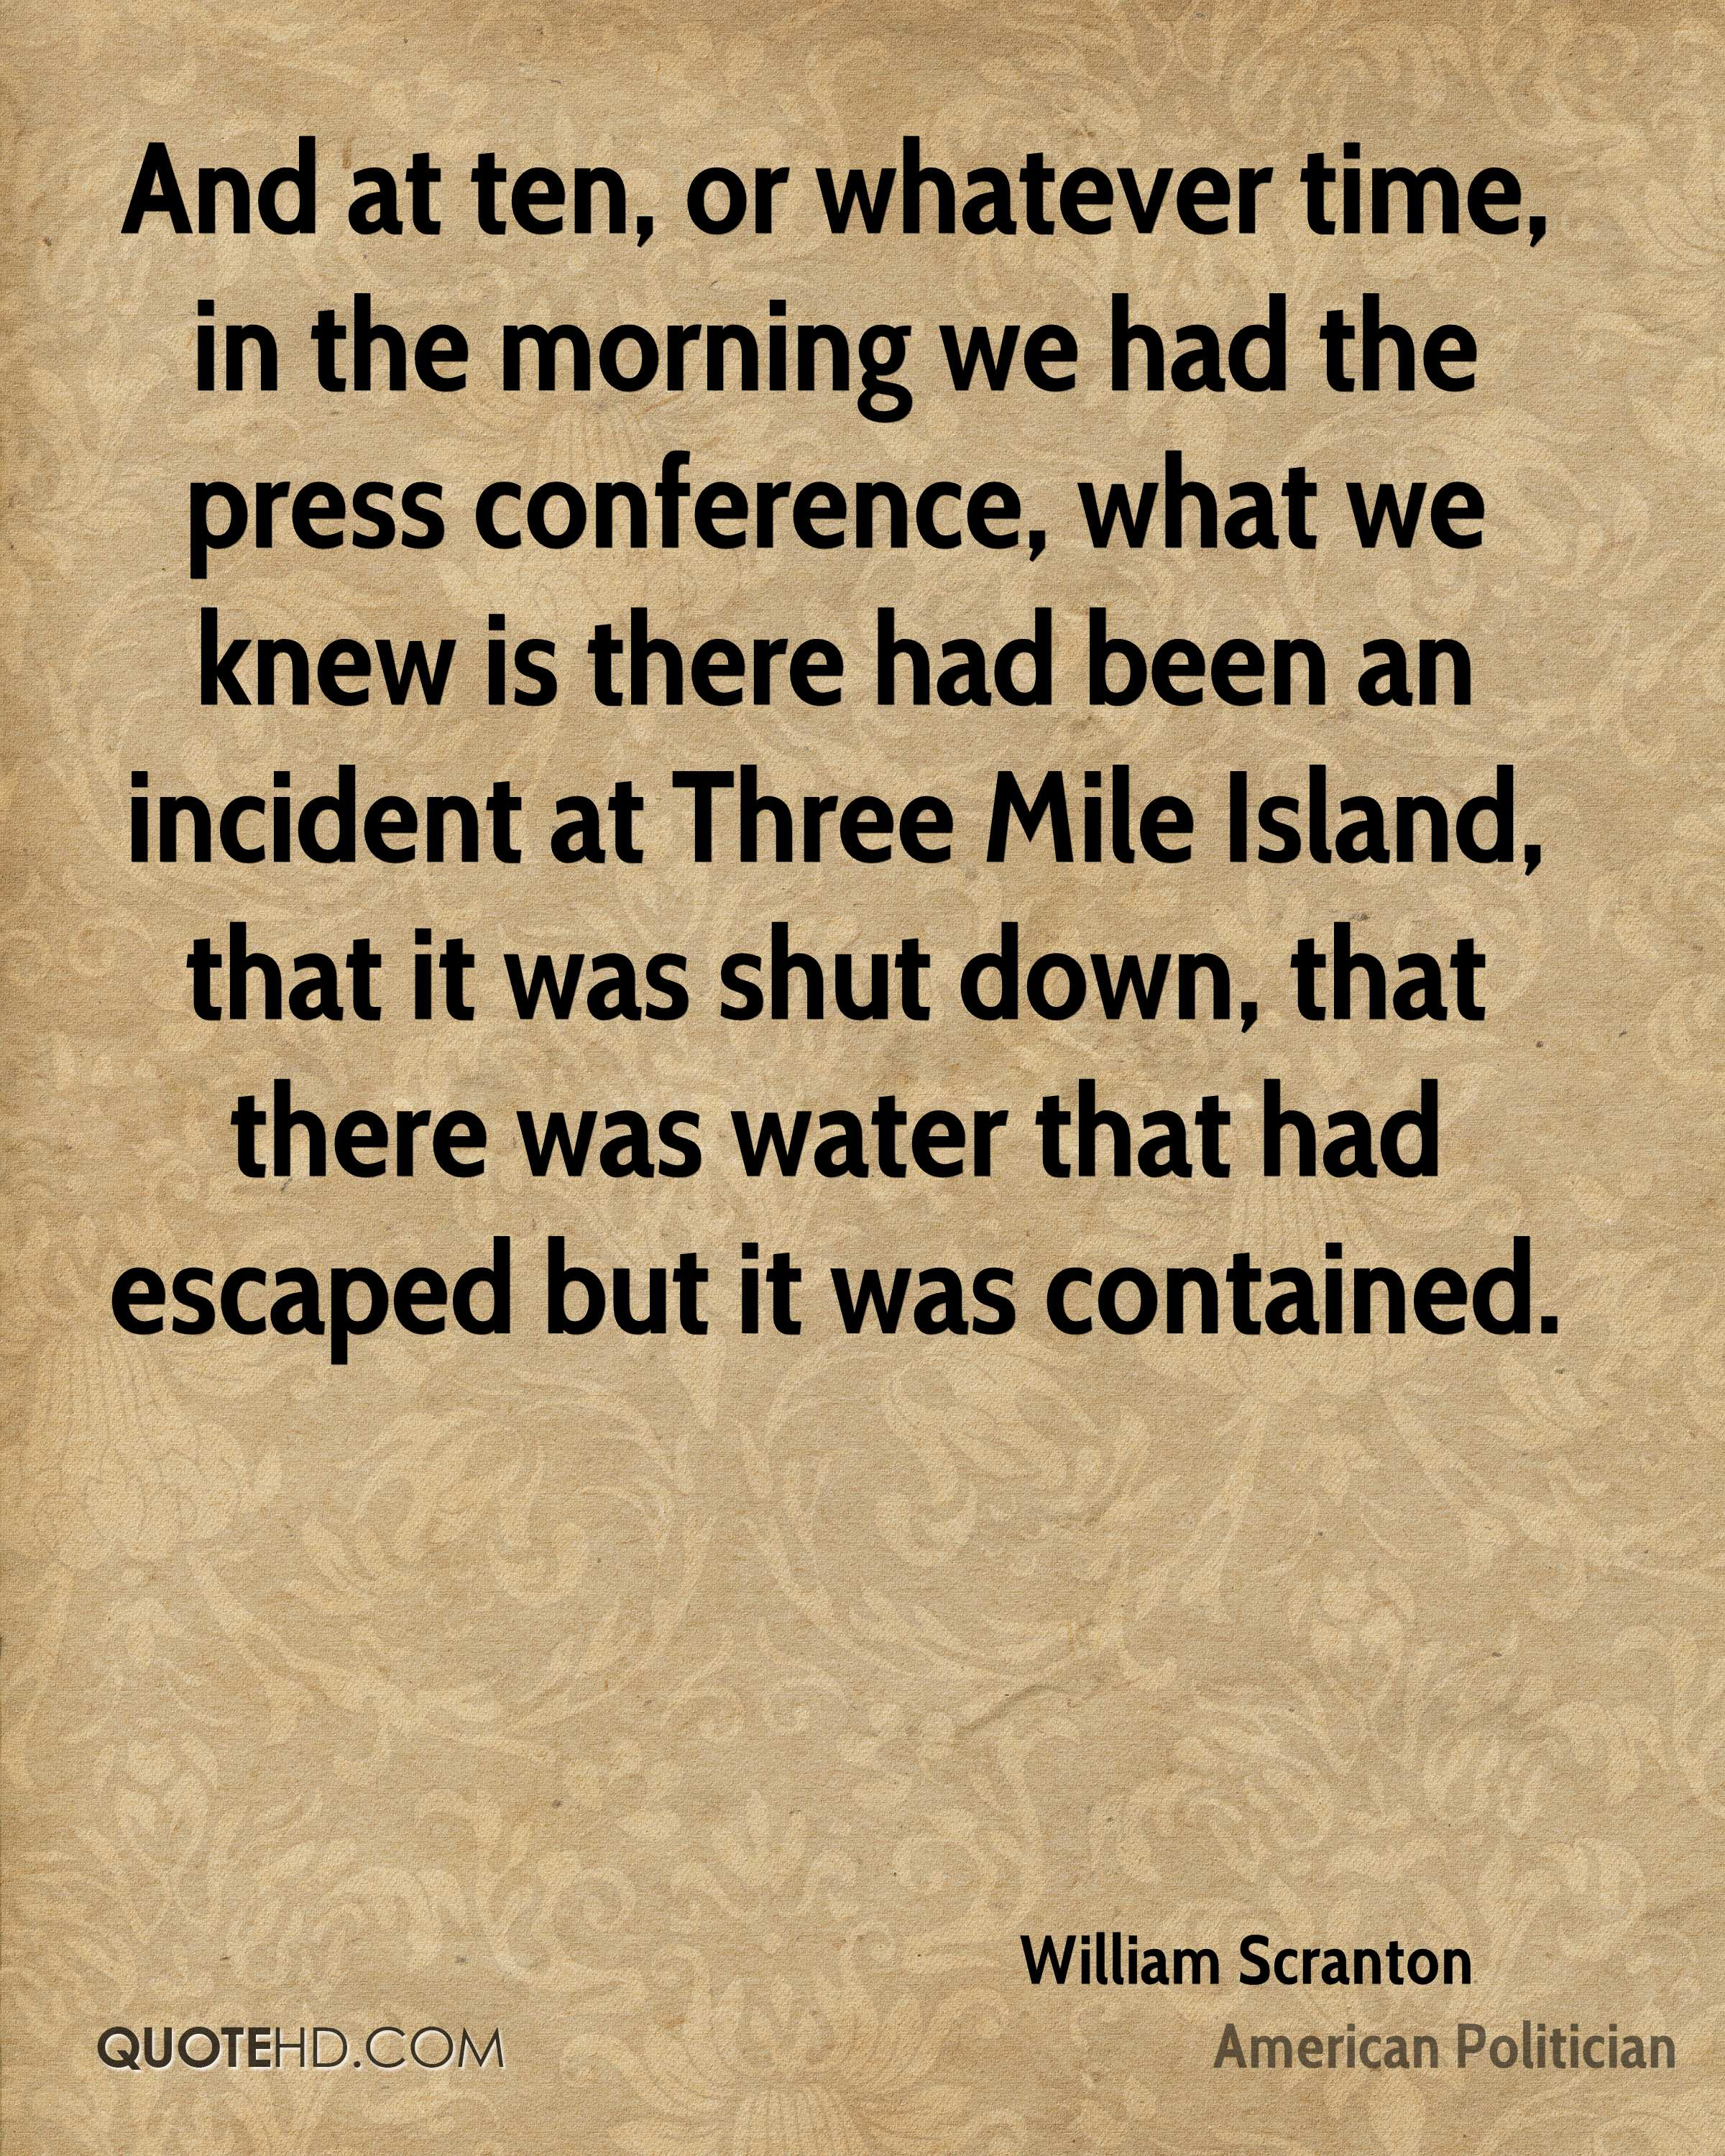 And at ten, or whatever time, in the morning we had the press conference, what we knew is there had been an incident at Three Mile Island, that it was shut down, that there was water that had escaped but it was contained.